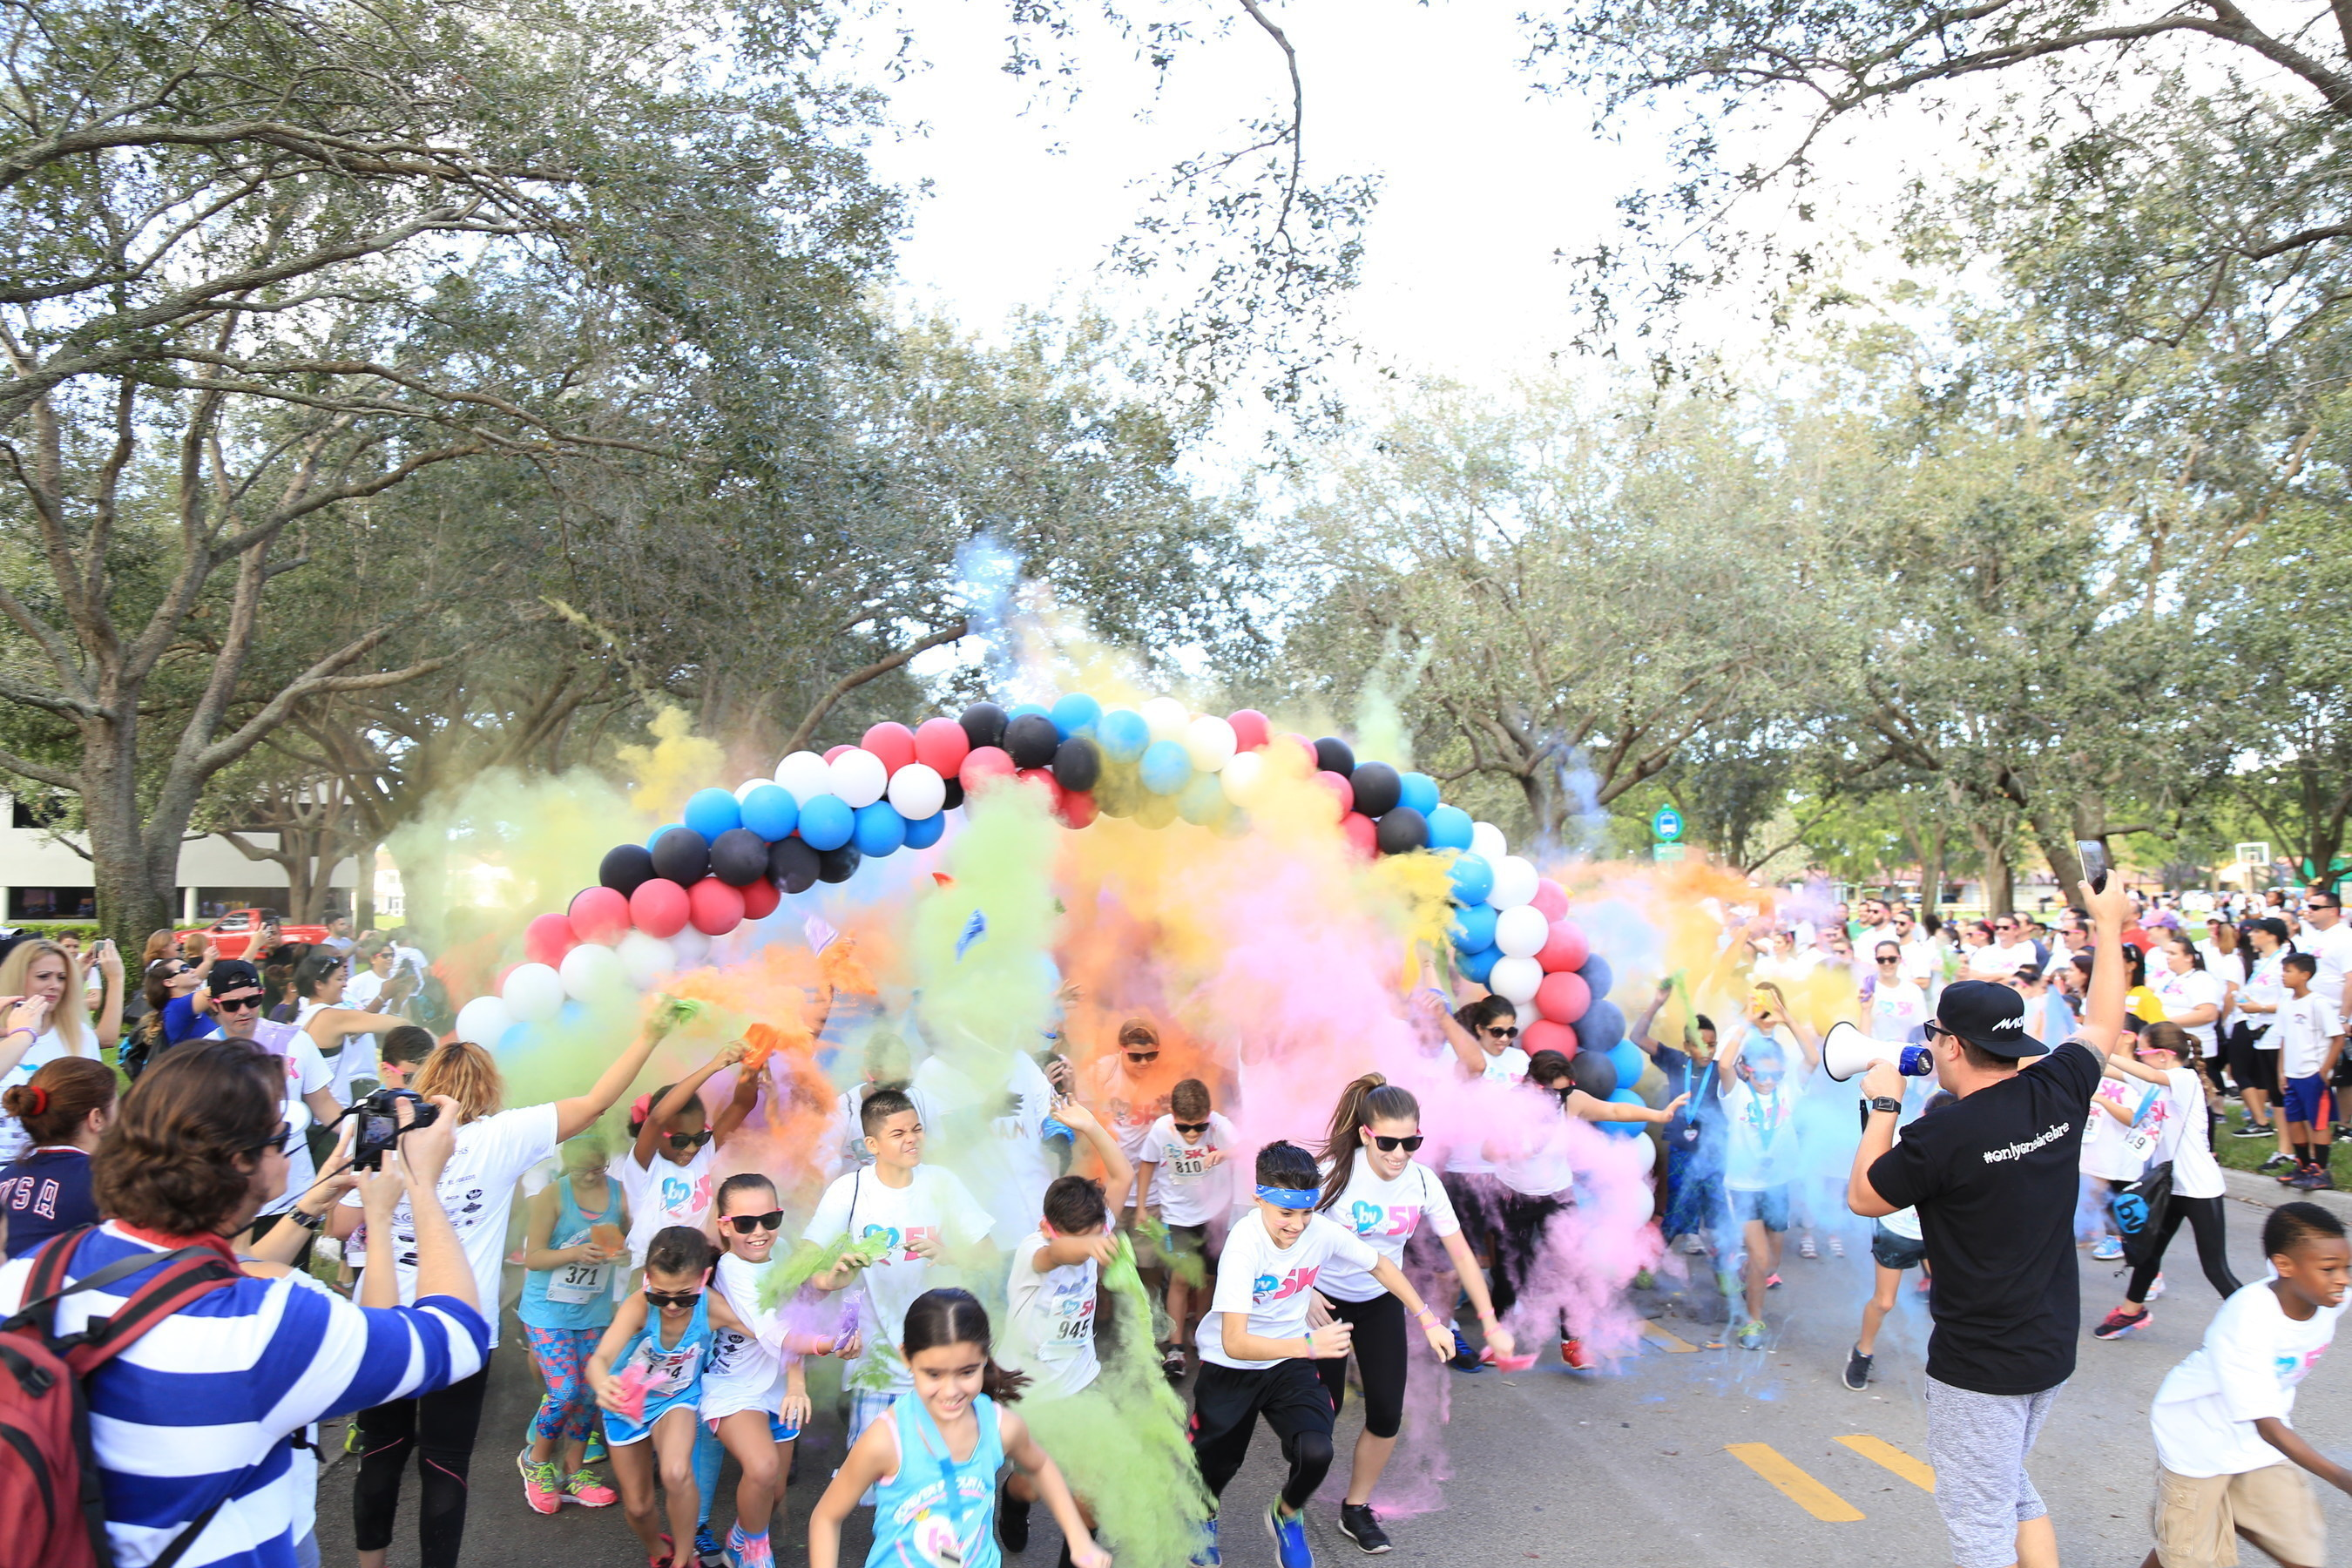 More than 2,000 supporters turned out for the inaugural Breanna Vergara 5K & Color Run held Sunday, December 13 in Miami Lakes.